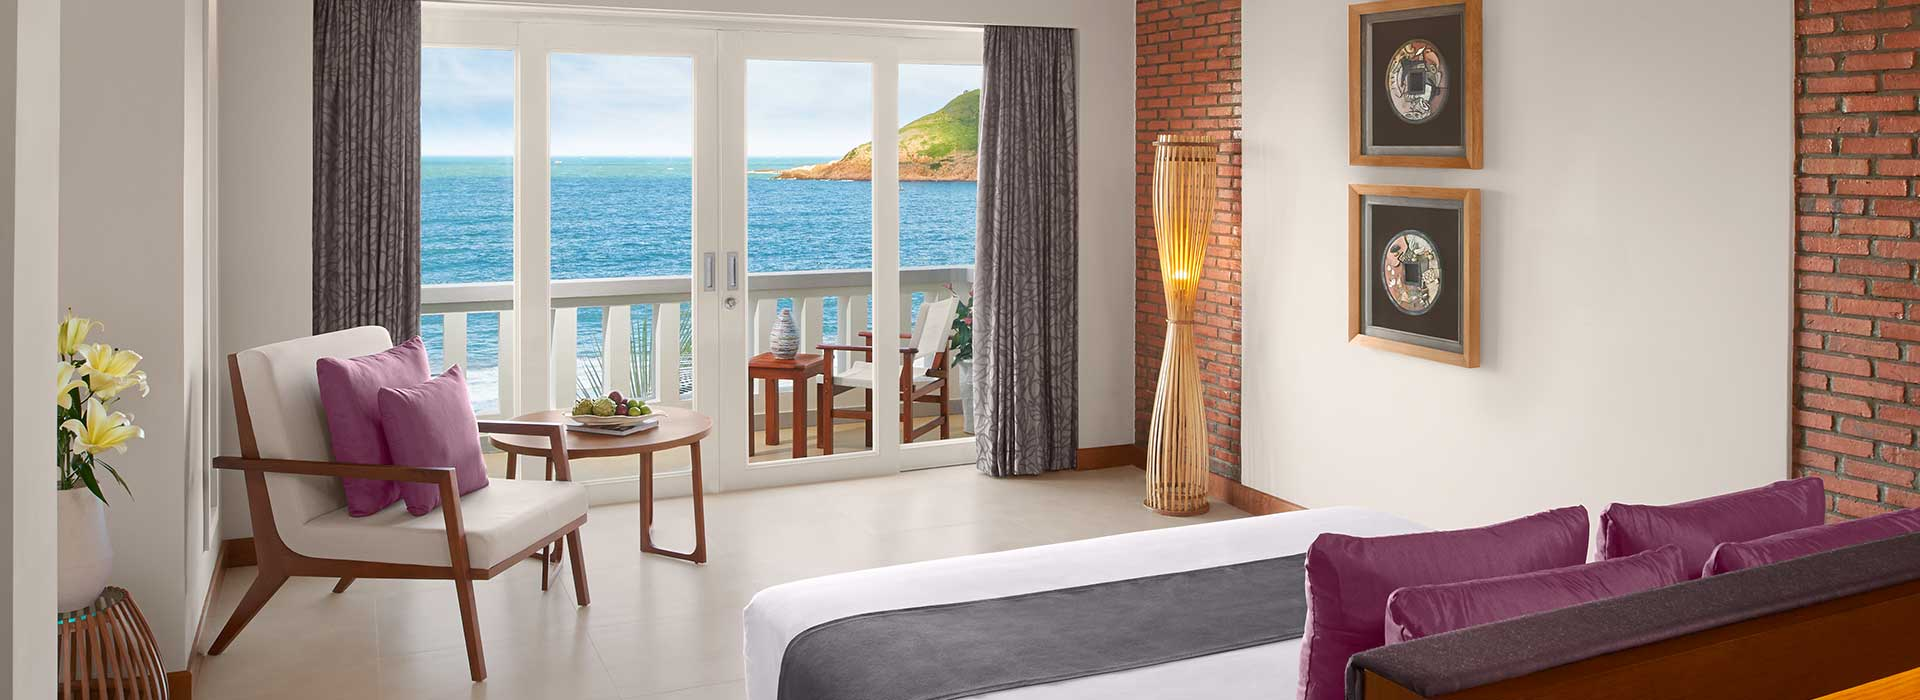 A double bedroom with sea views at AVANI Quy Nhon